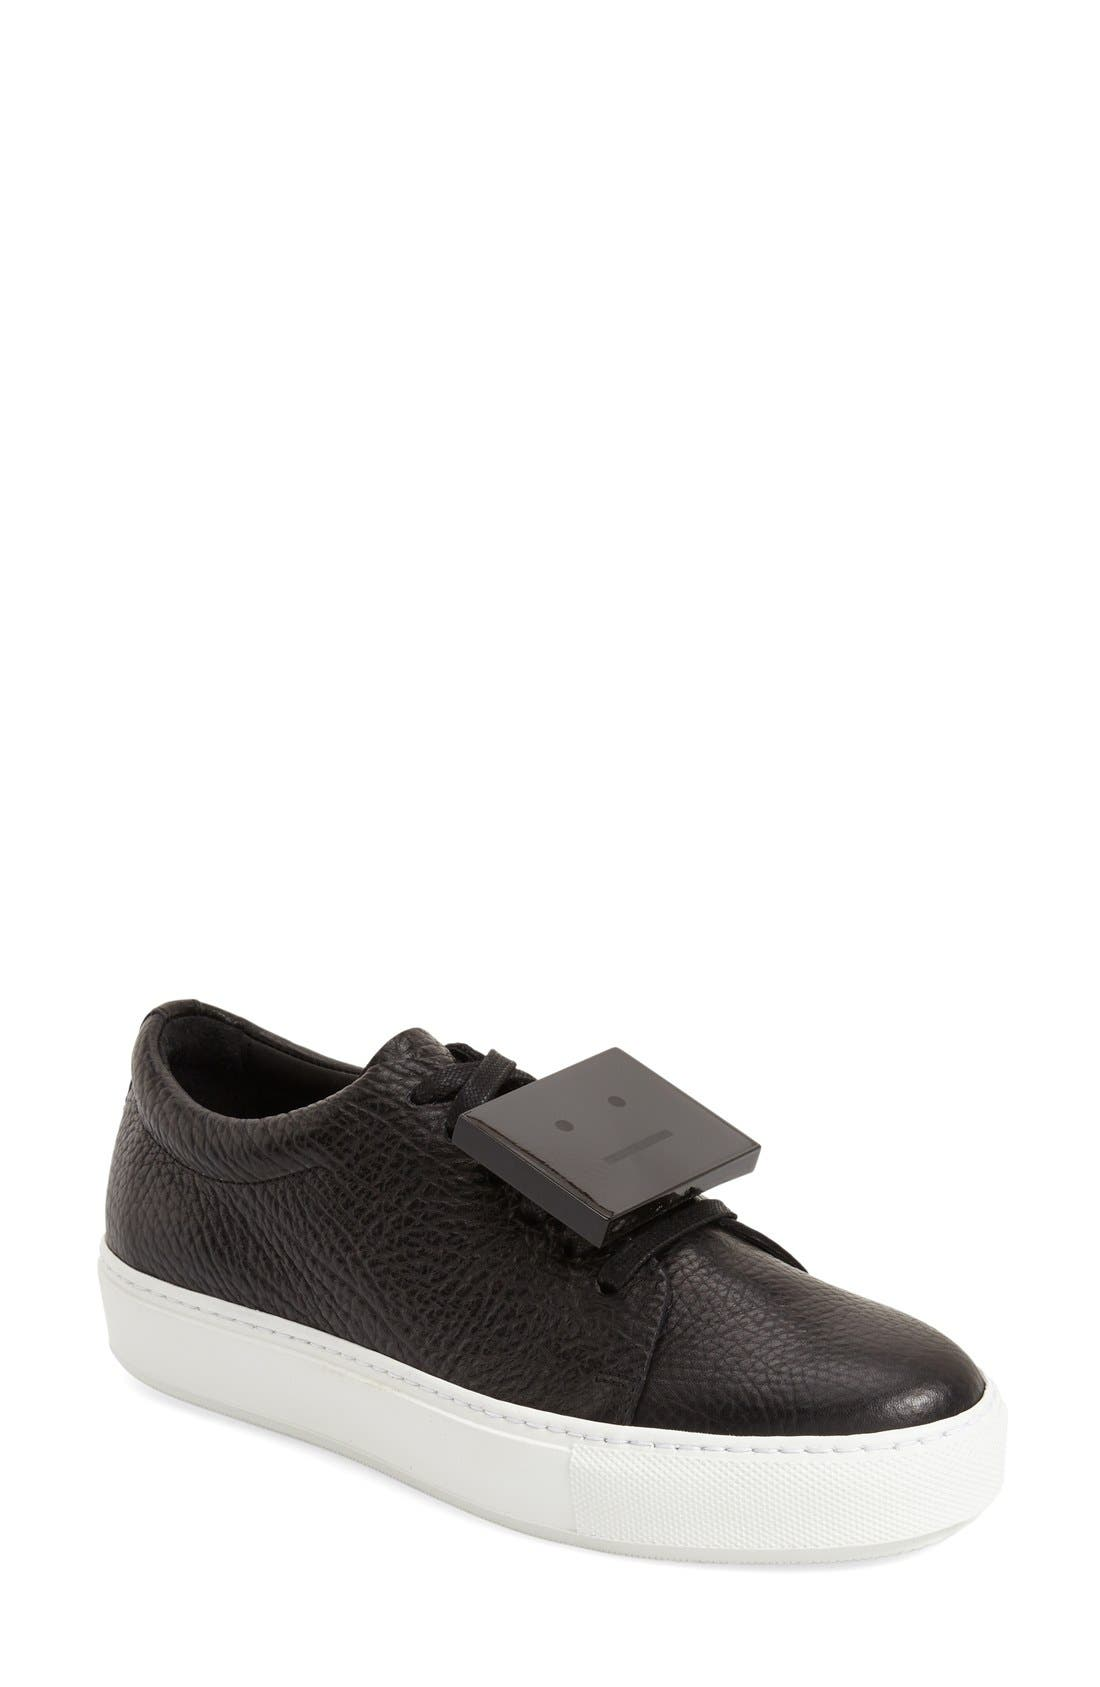 Adriana - Grain Leather Sneaker,                             Main thumbnail 1, color,                             001